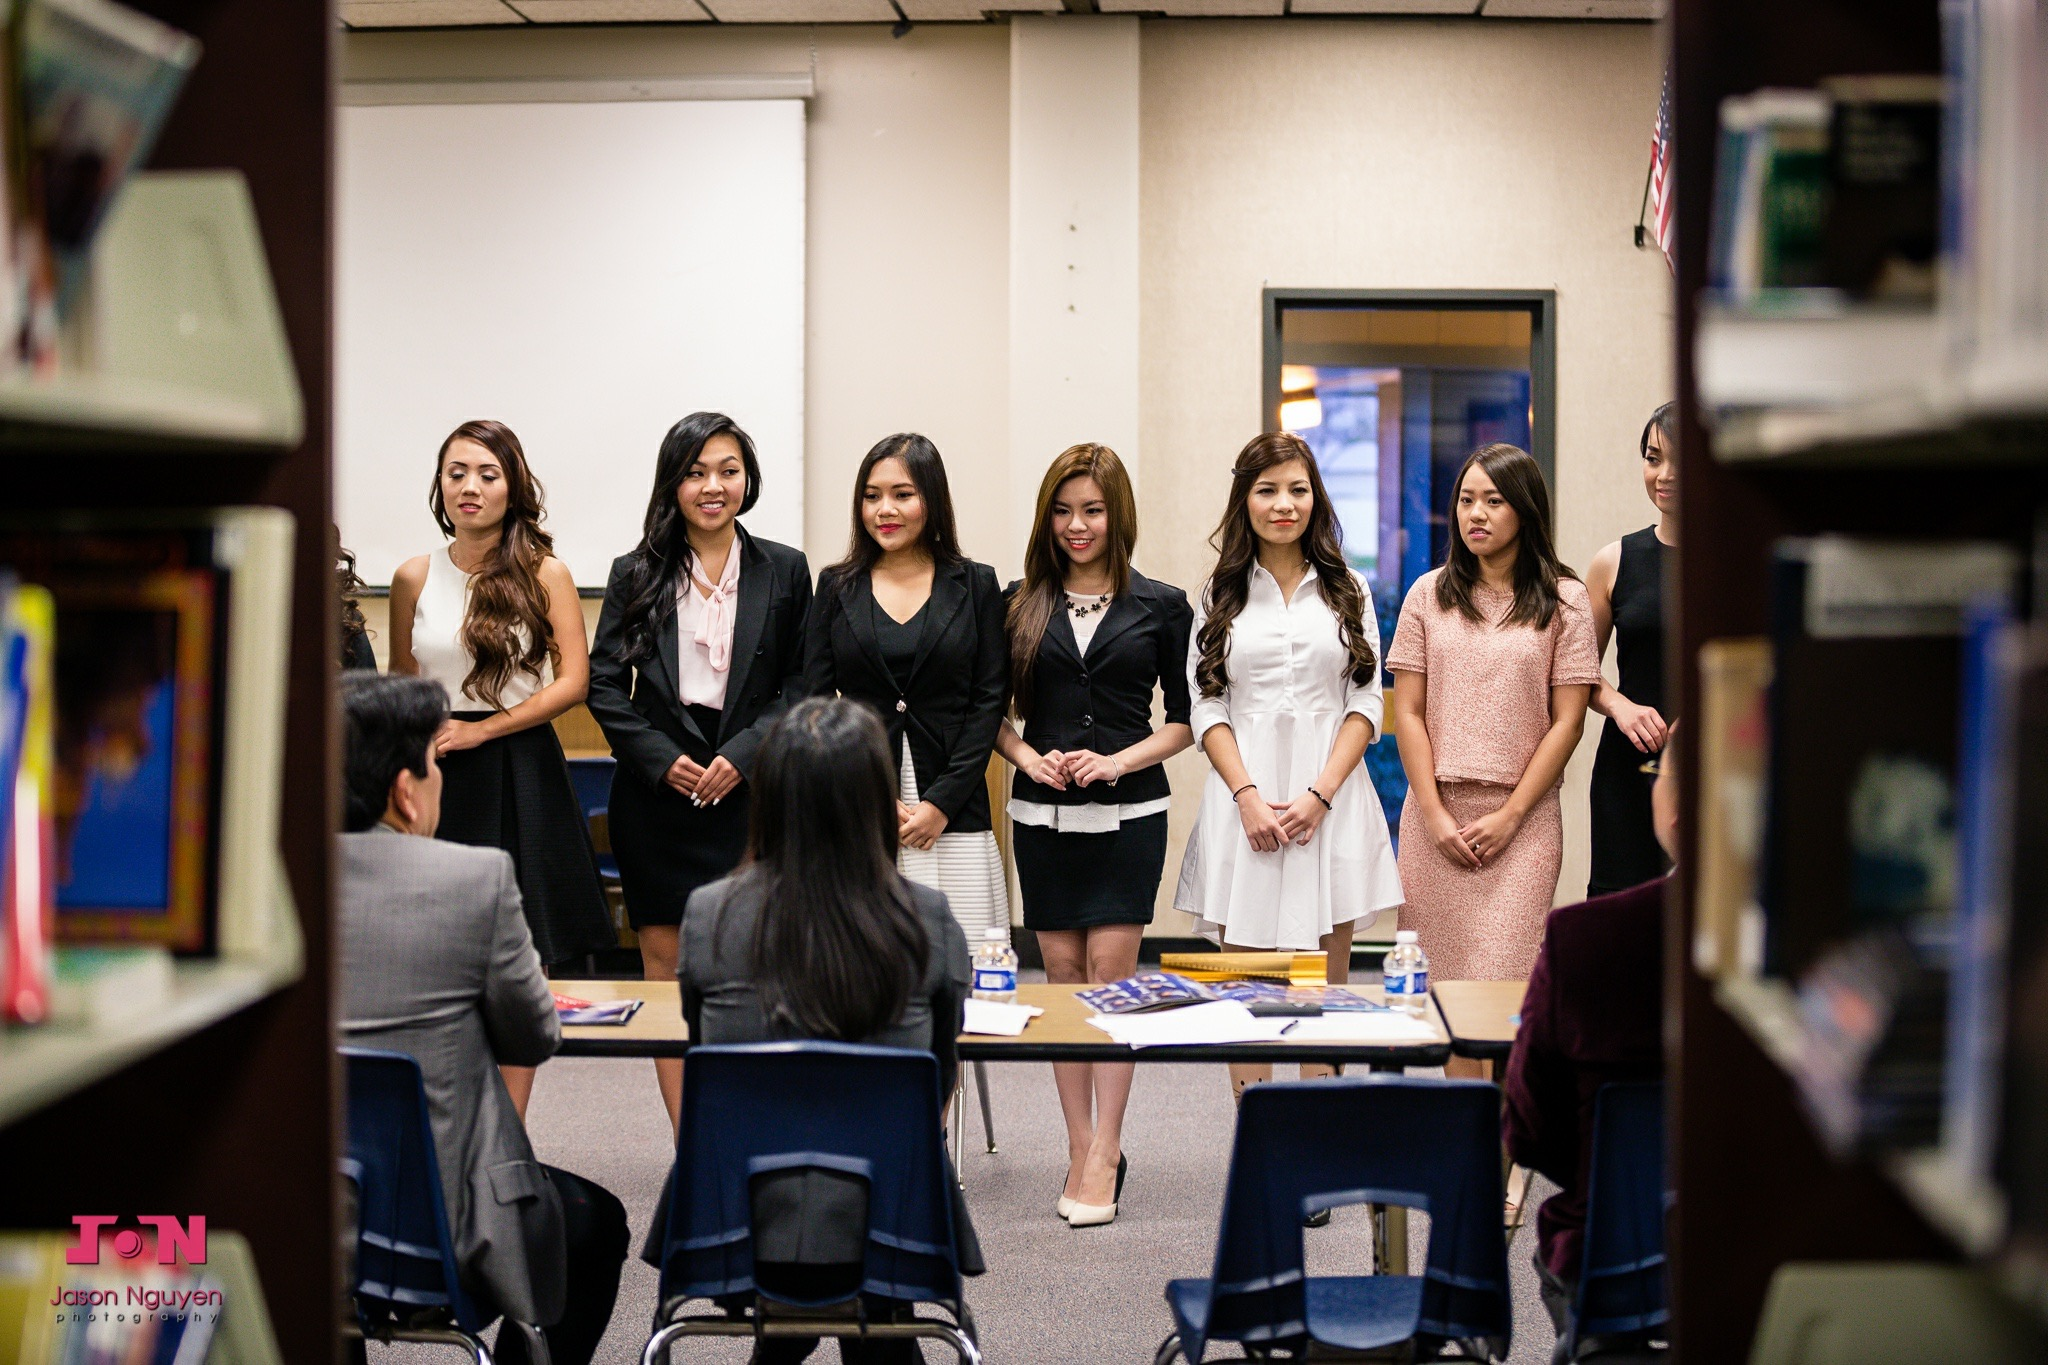 Miss Vietnam California 2016 Contestants Interview with the Judges - Image 112